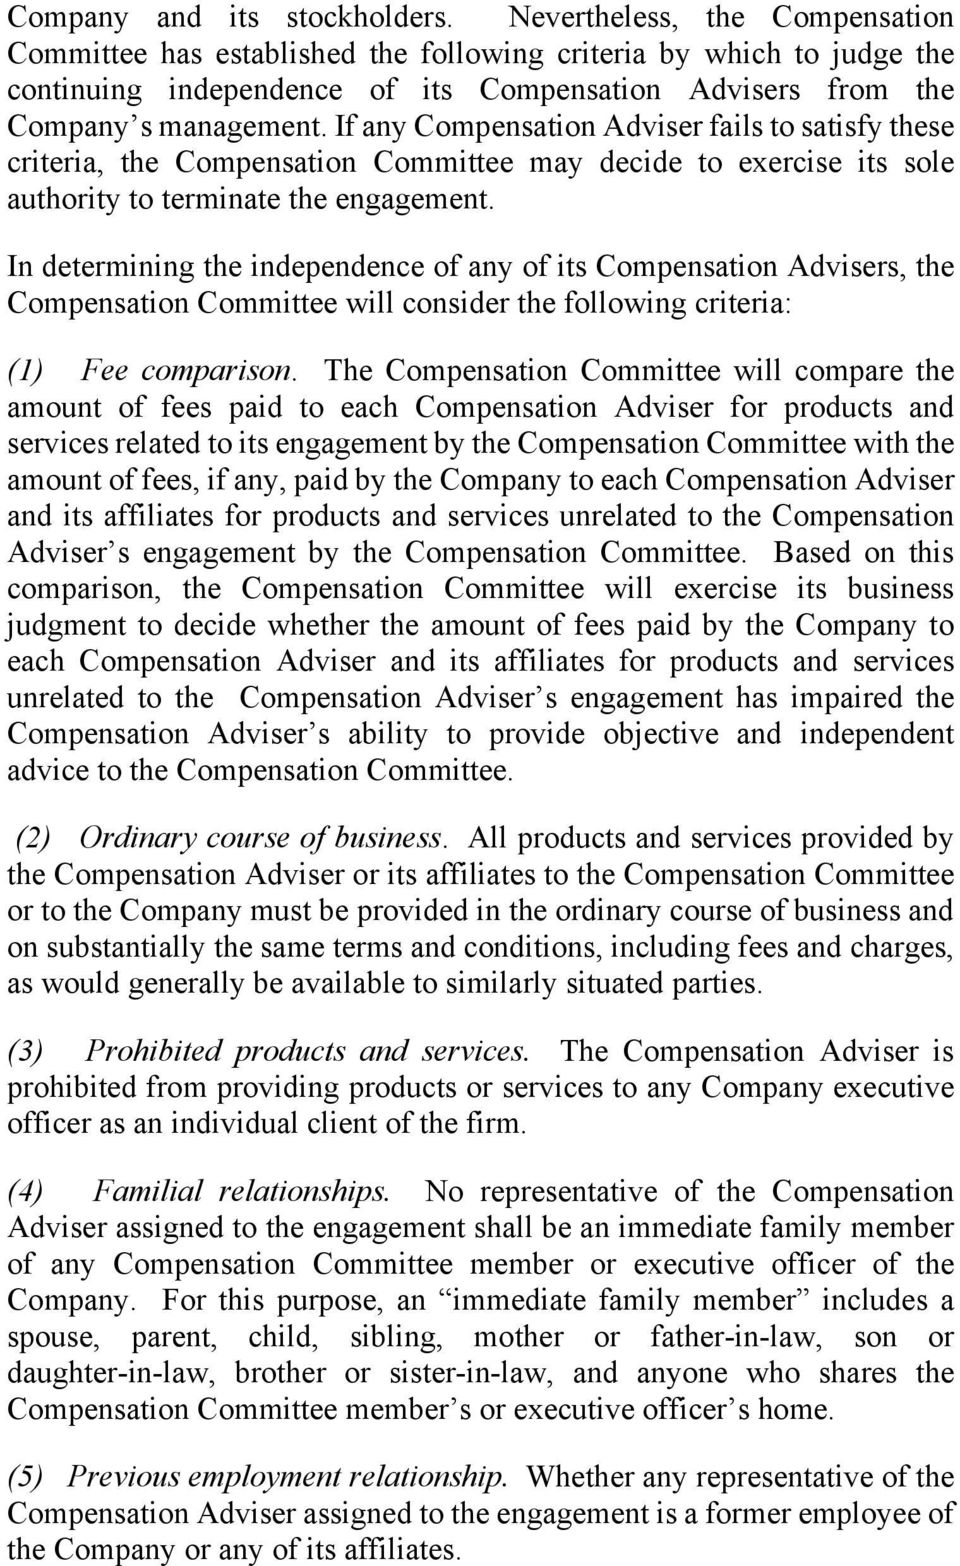 If any Compensation Adviser fails to satisfy these criteria, the Compensation Committee may decide to exercise its sole authority to terminate the engagement.